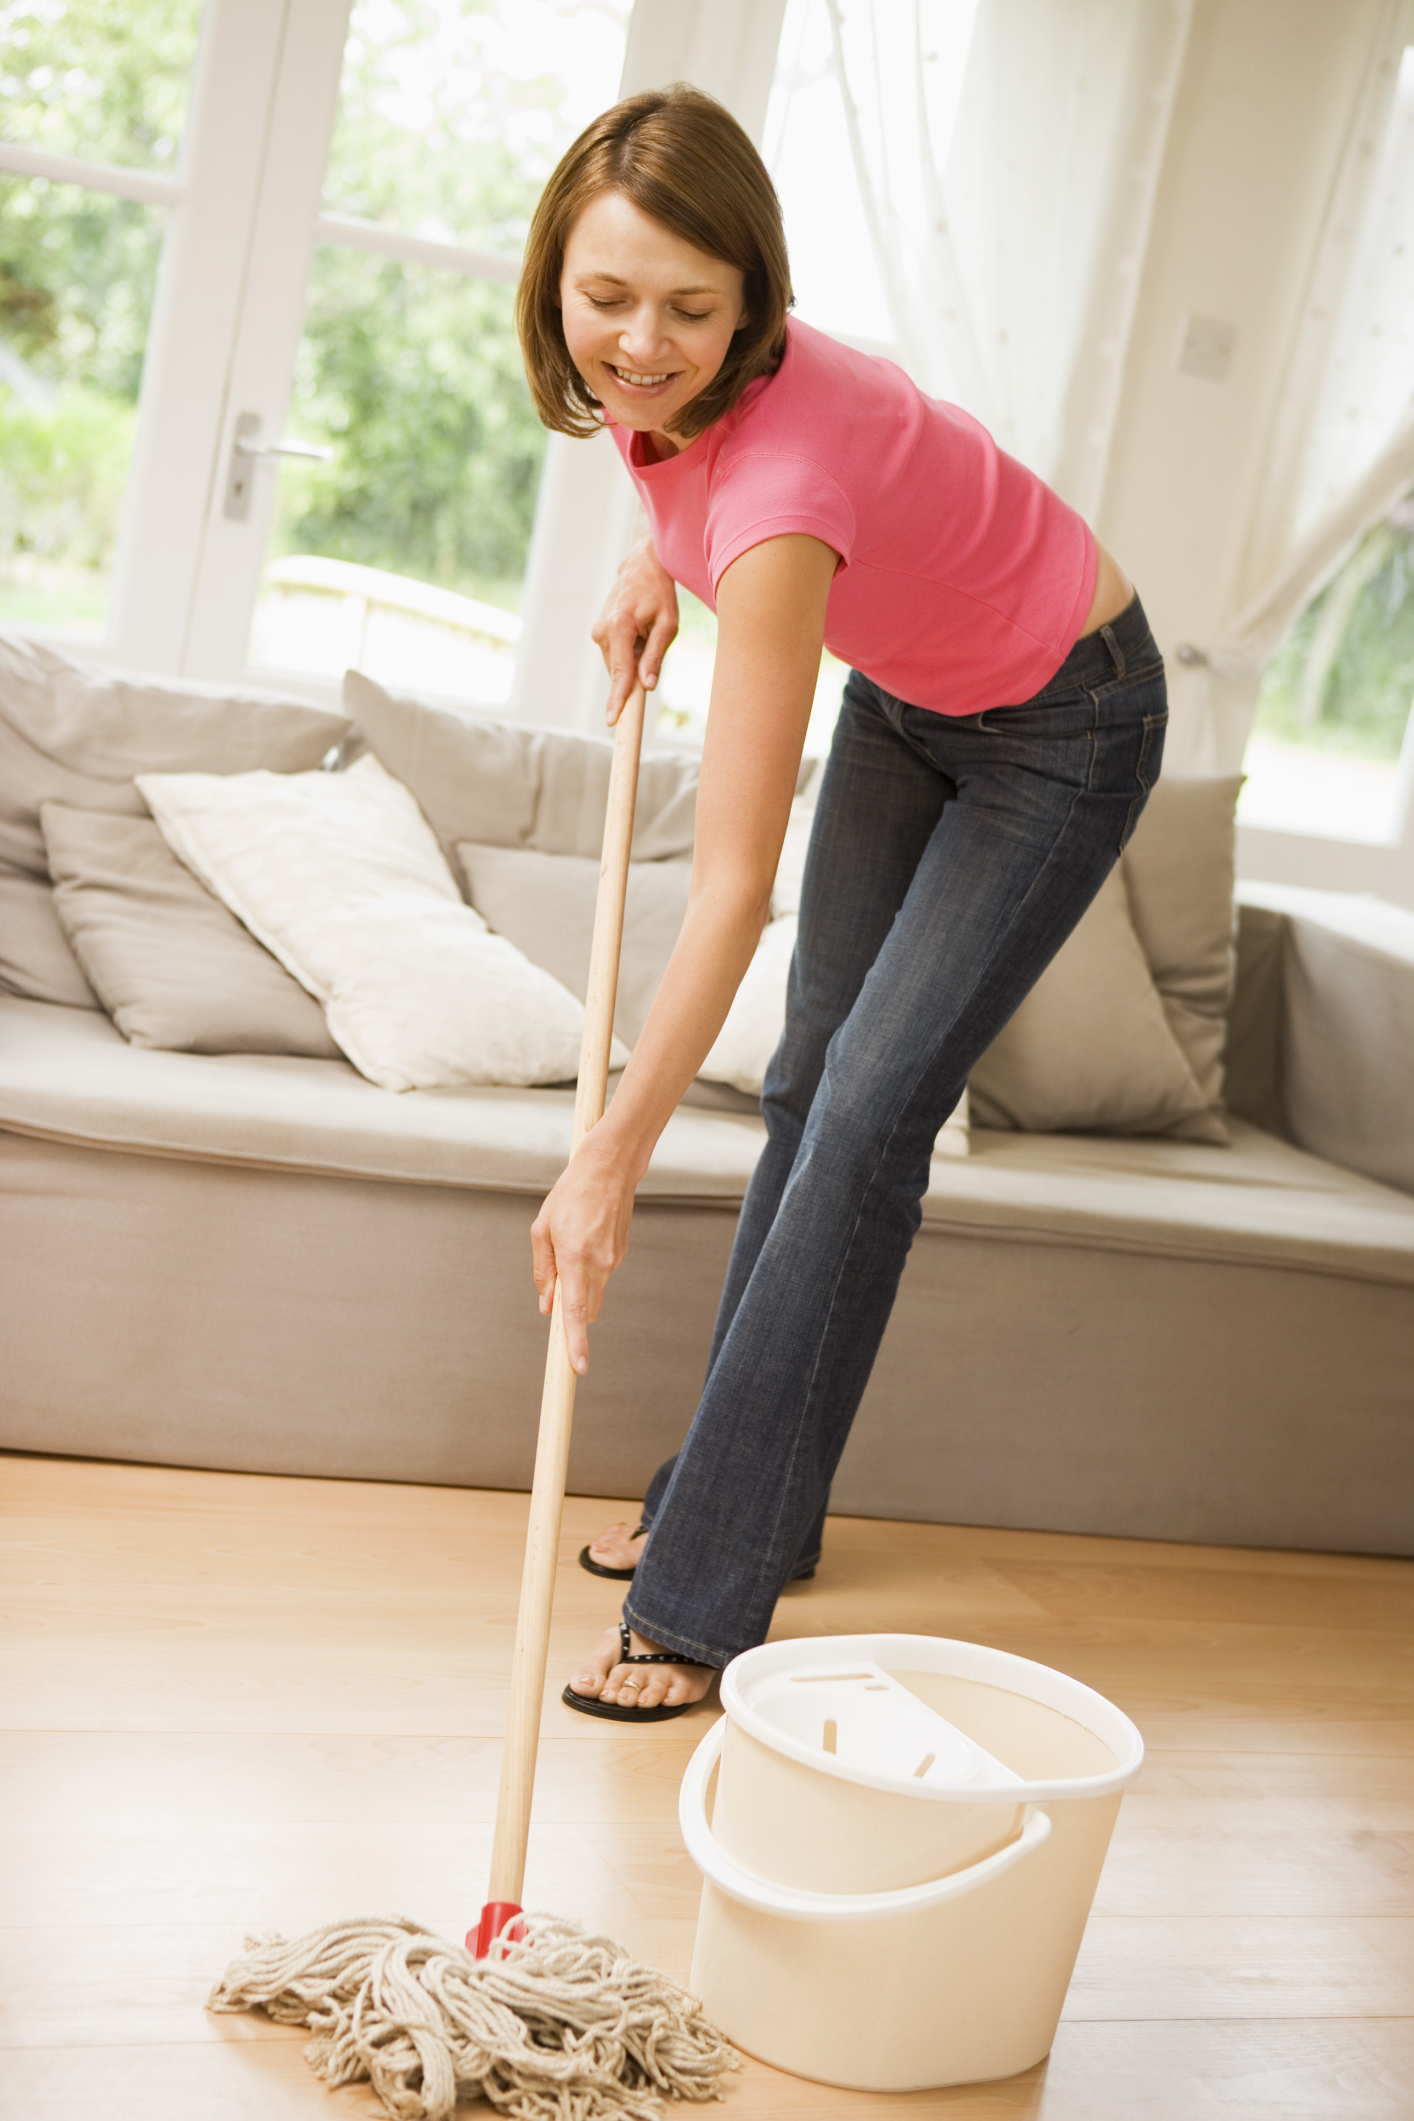 Calories In Sweeping Amp Mopping A Floor For An Hour Chron Com